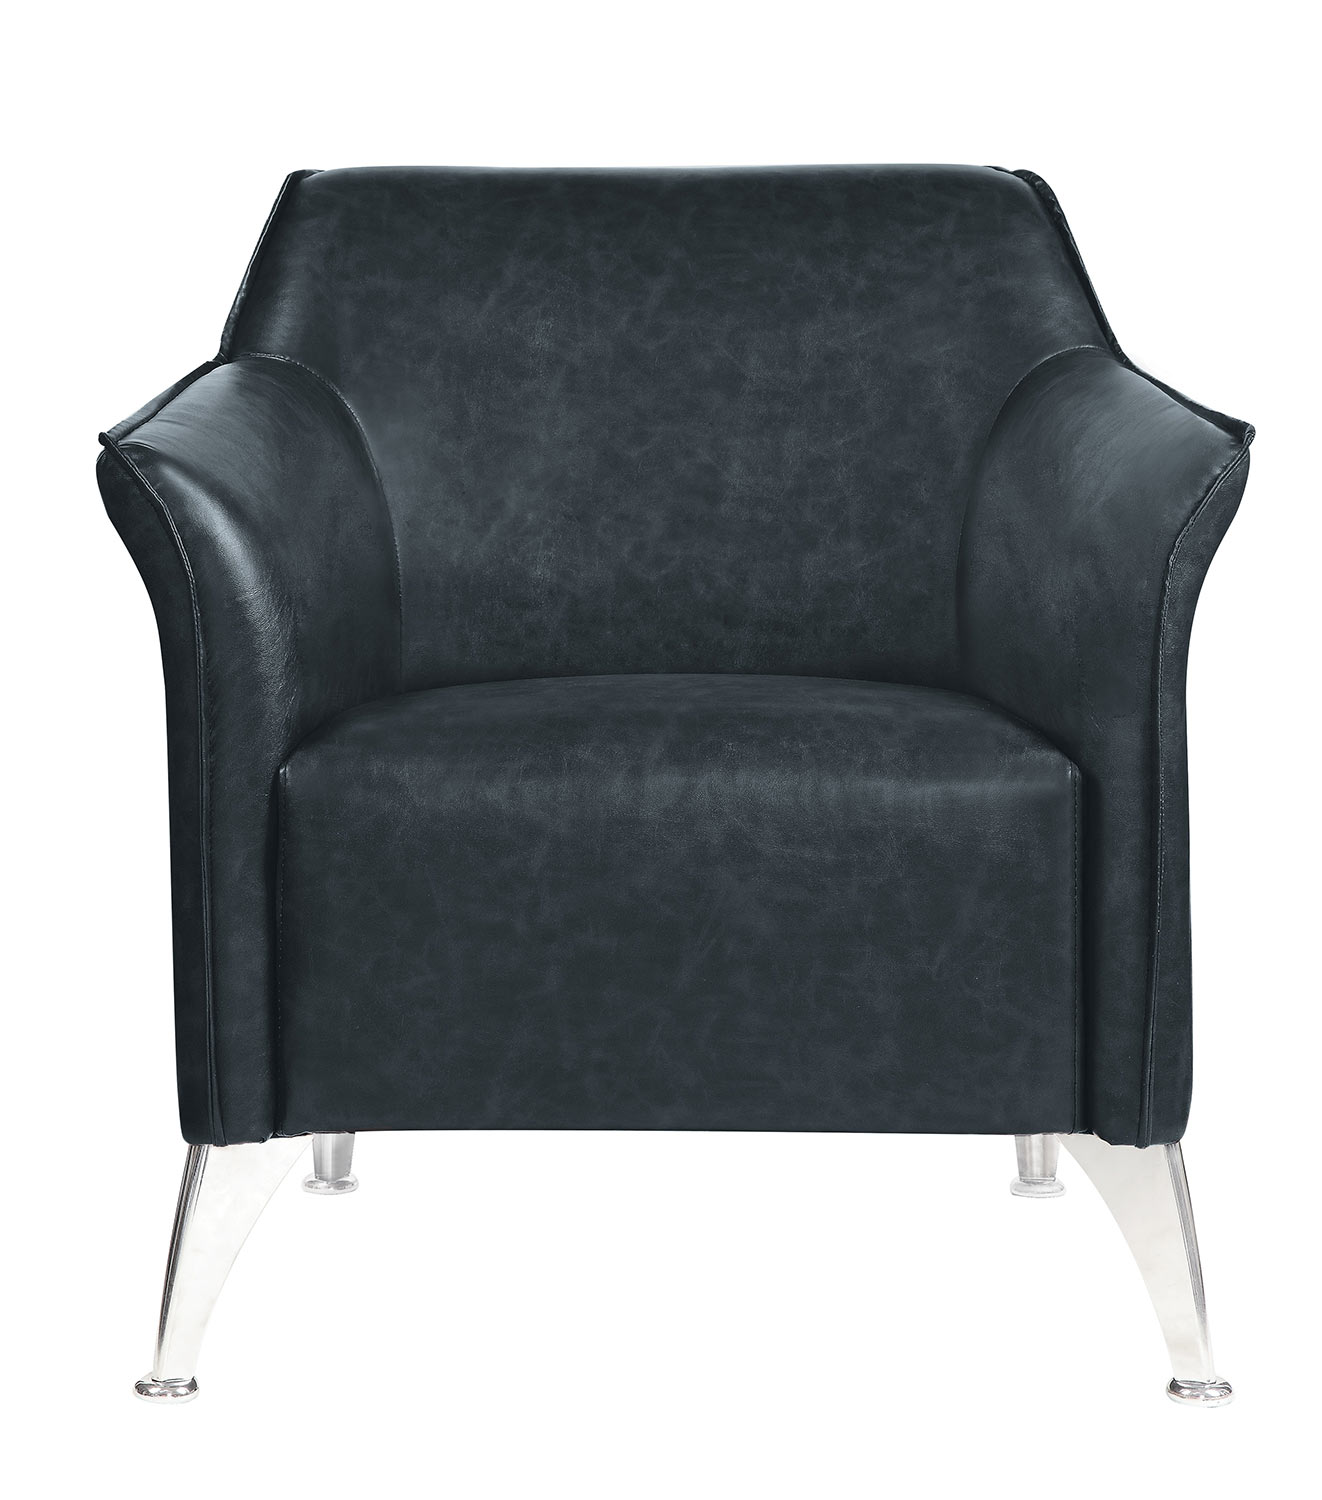 Homelegance Basseri Accent Chair - Dark Gray